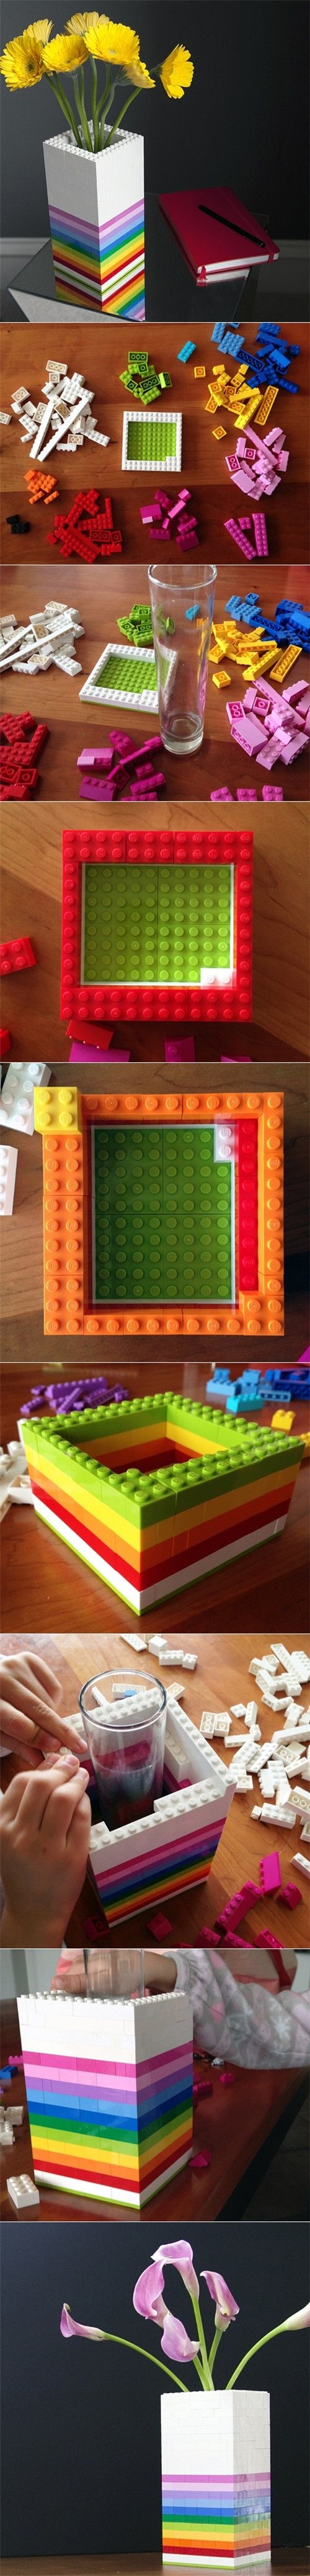 lego proyects